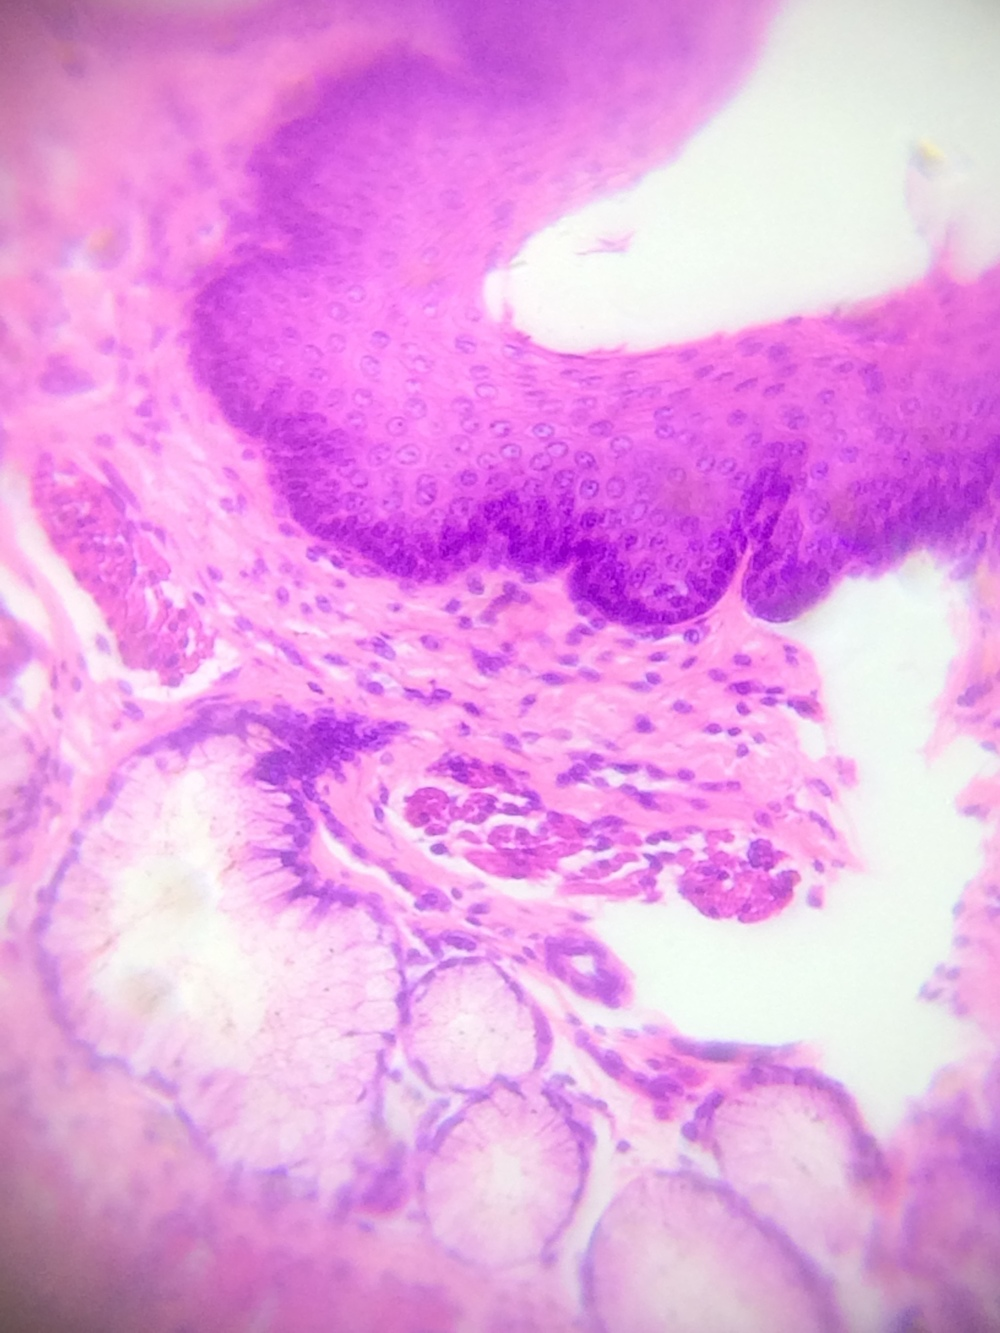 Esophagus tissue at ~377x (170x optical with 2.22x digital)